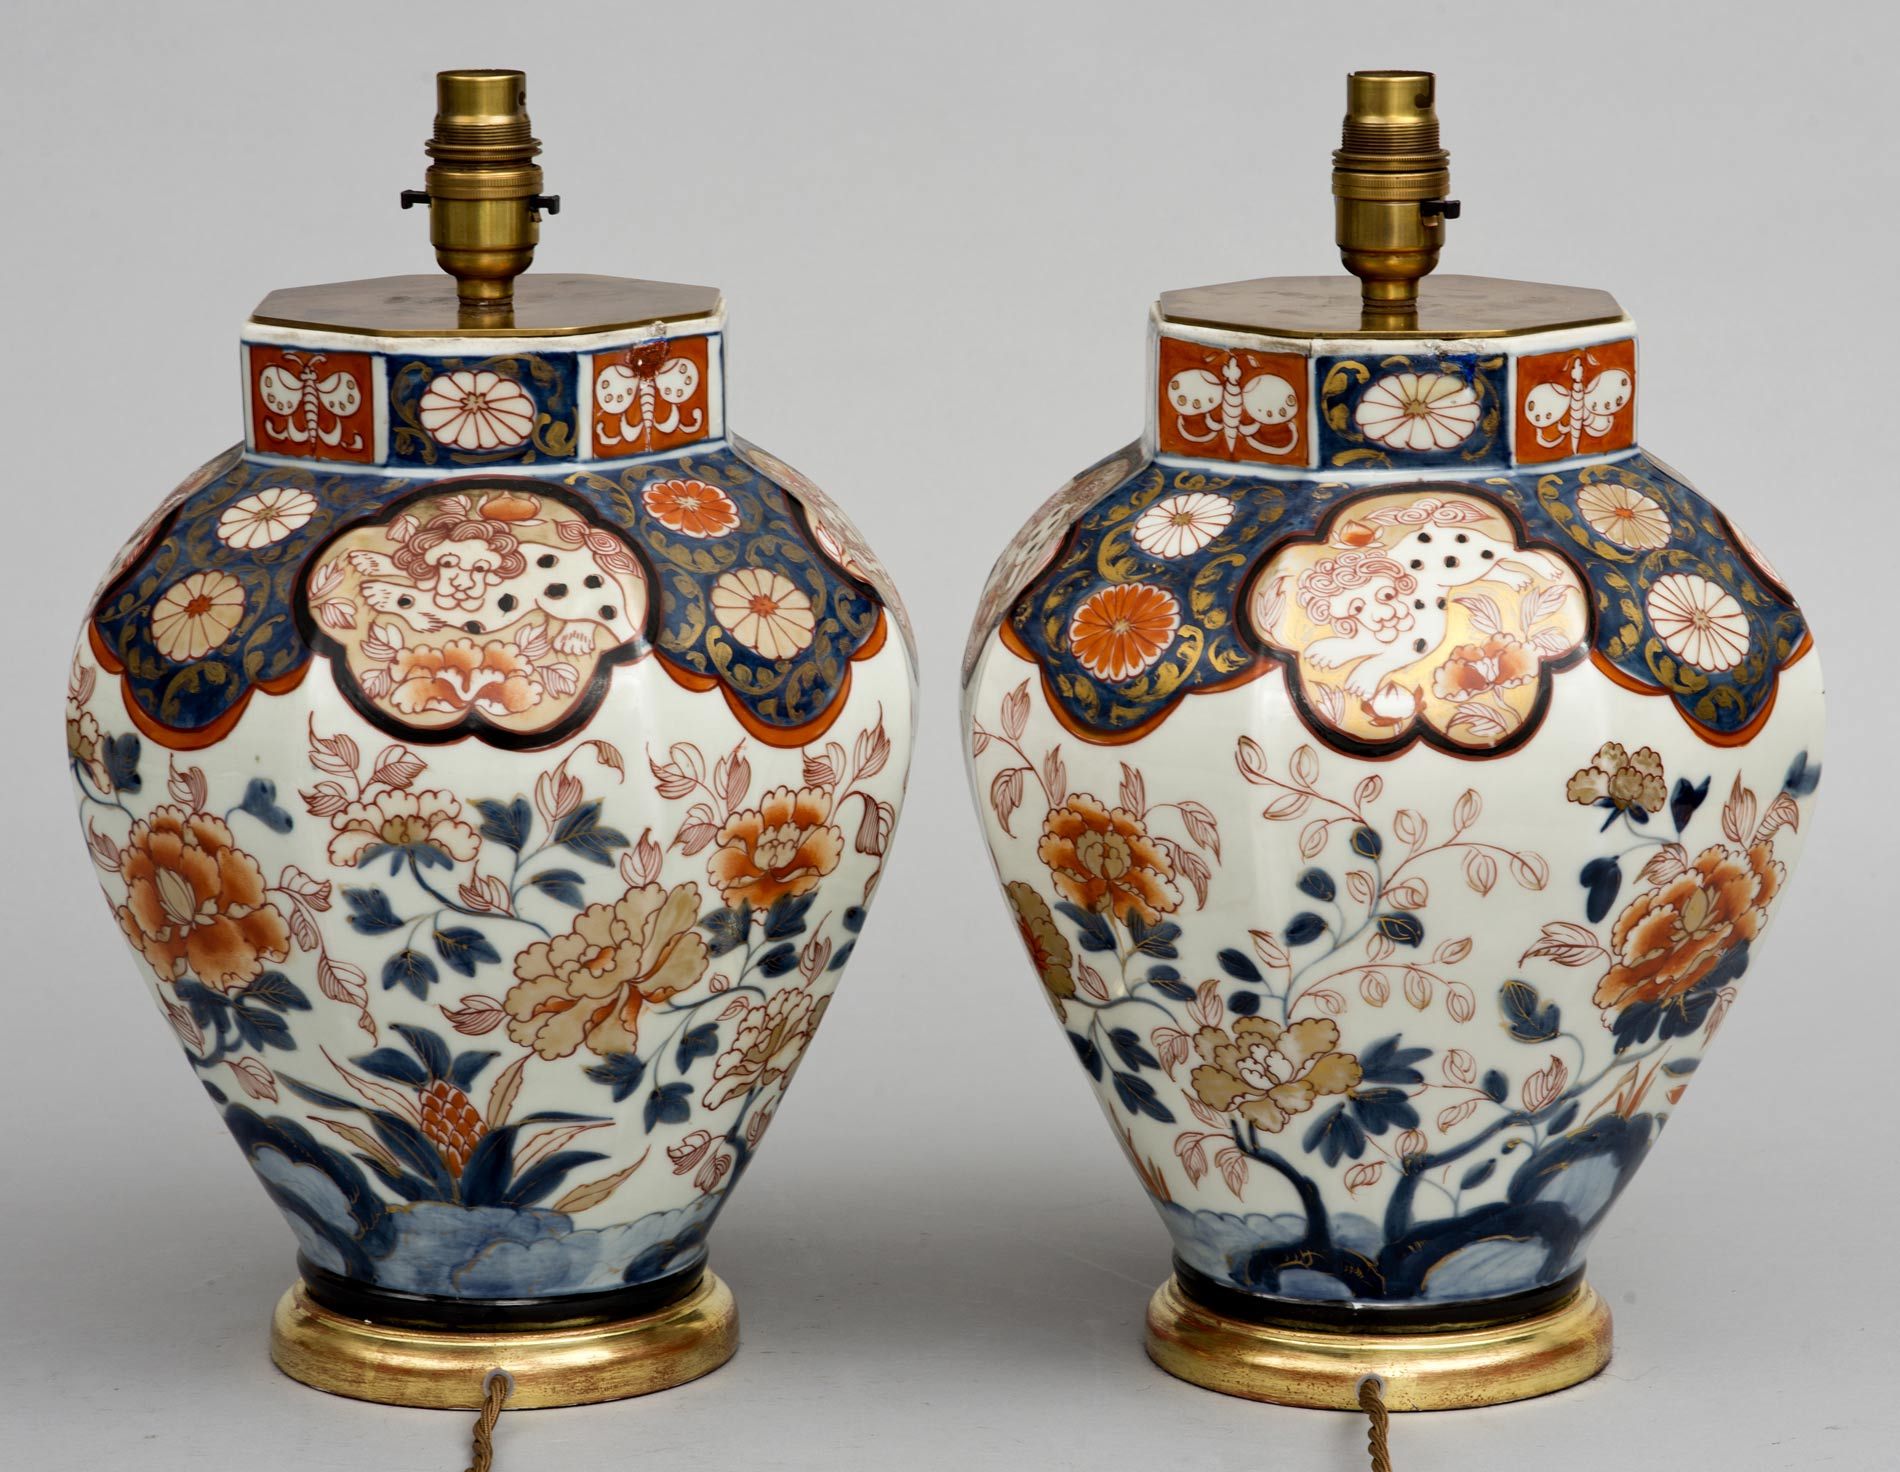 Antique Pair Imari Vase Lamps Circa 1840